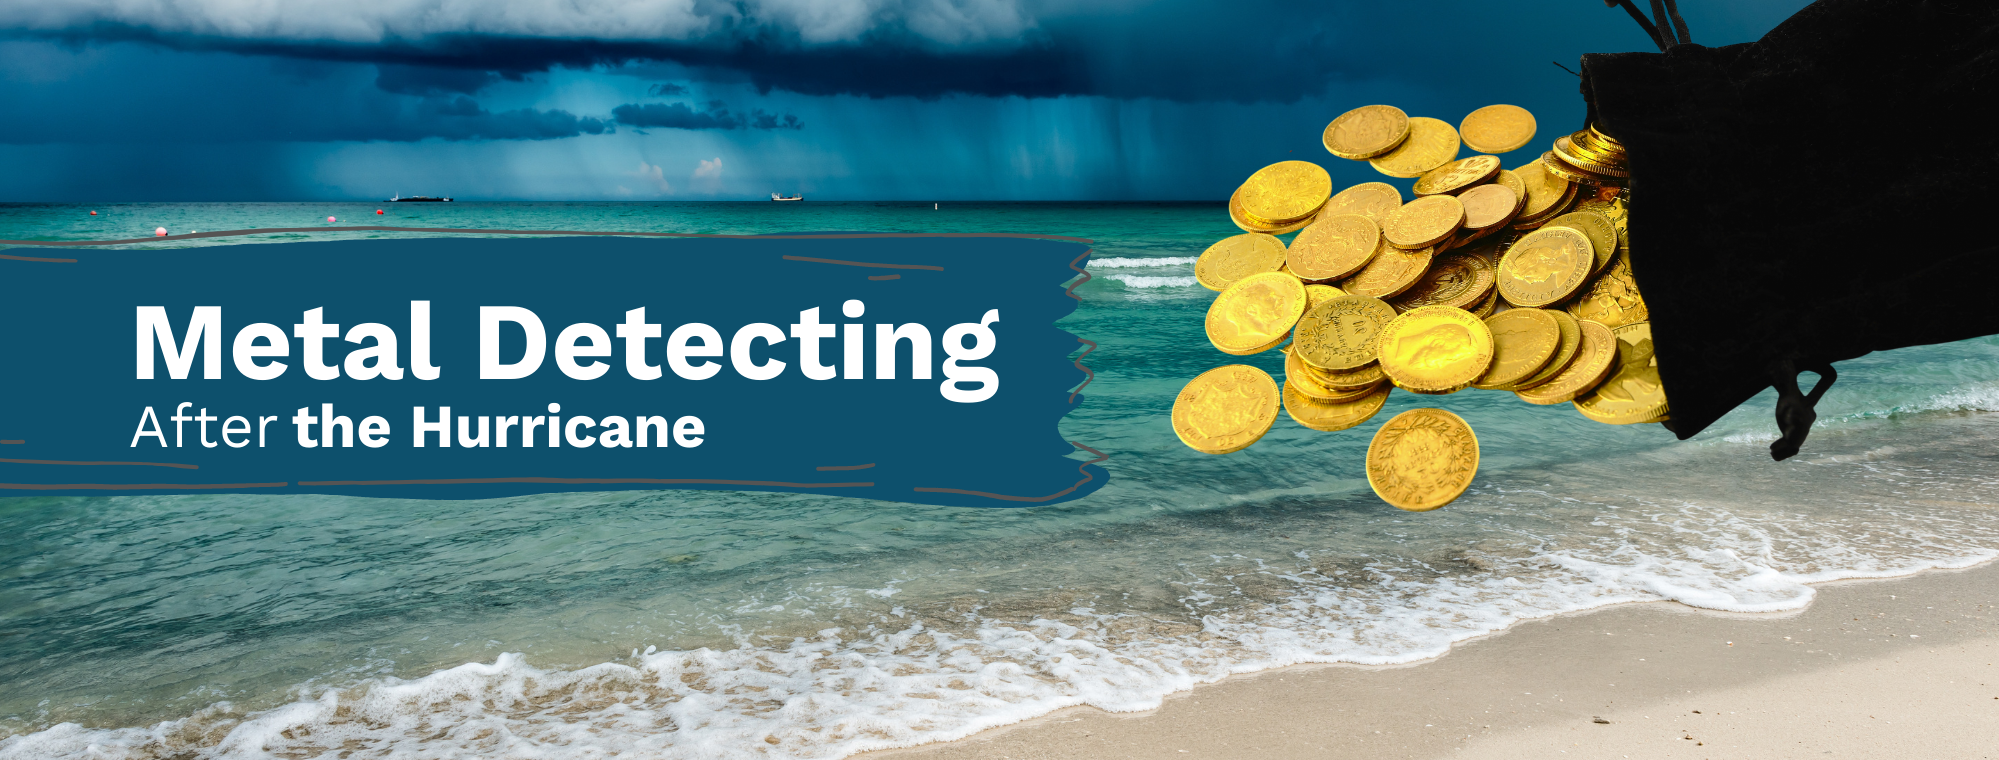 Metal Detecting After a Hurricane and gold coins on a beach